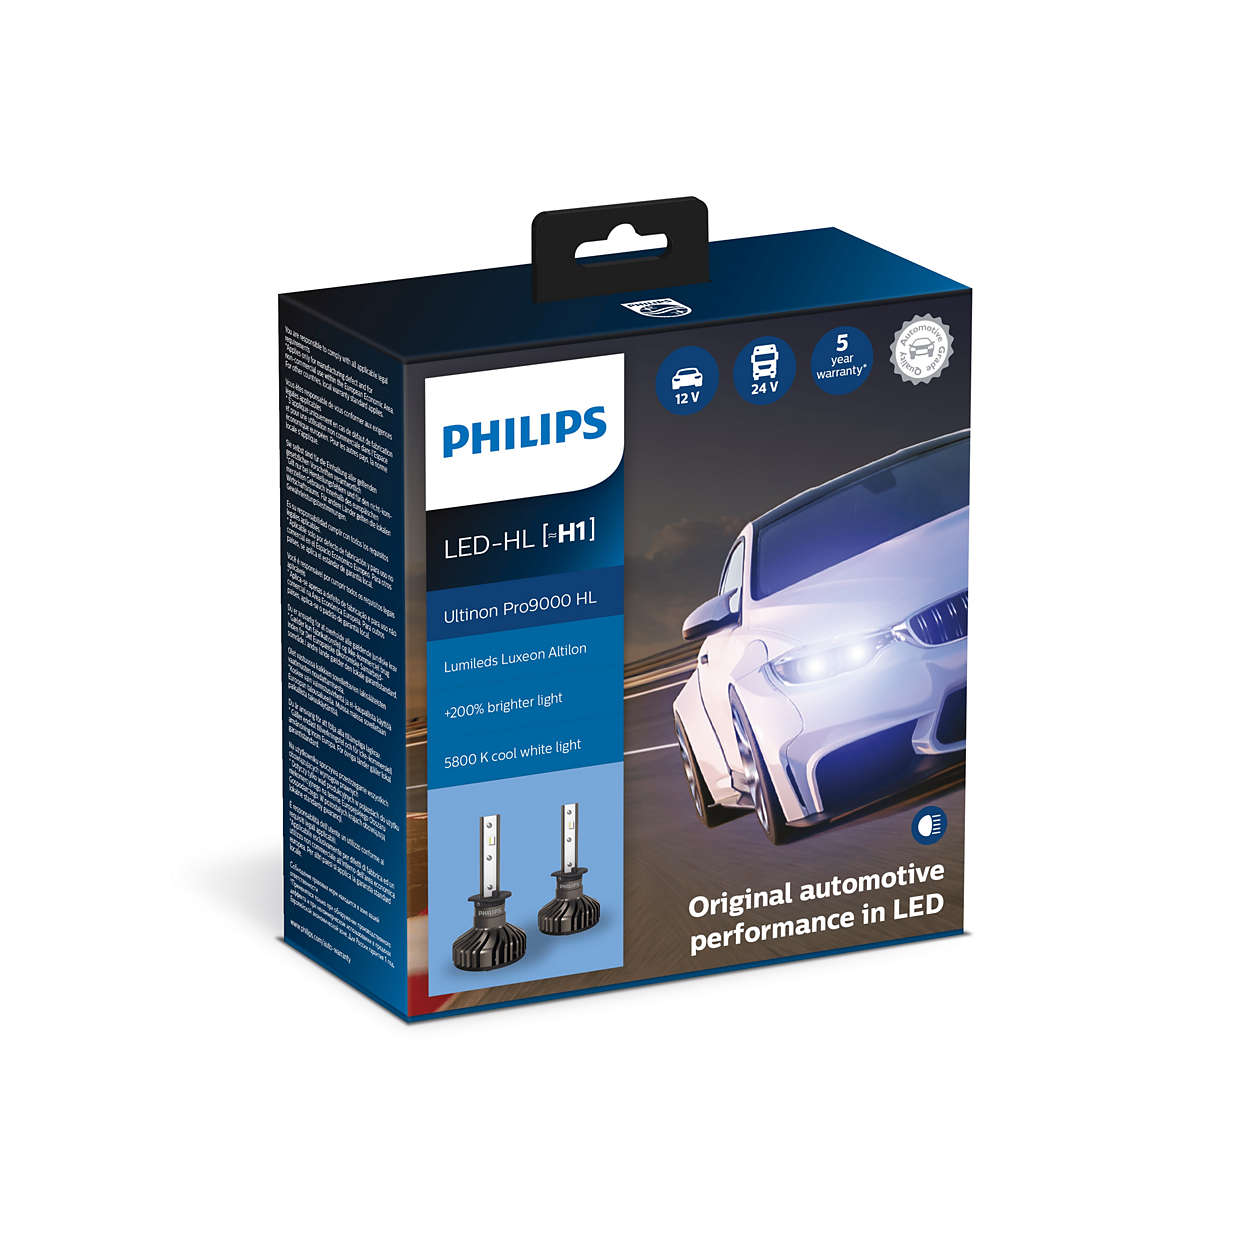 Breakthrough LED for driving enthusiasts